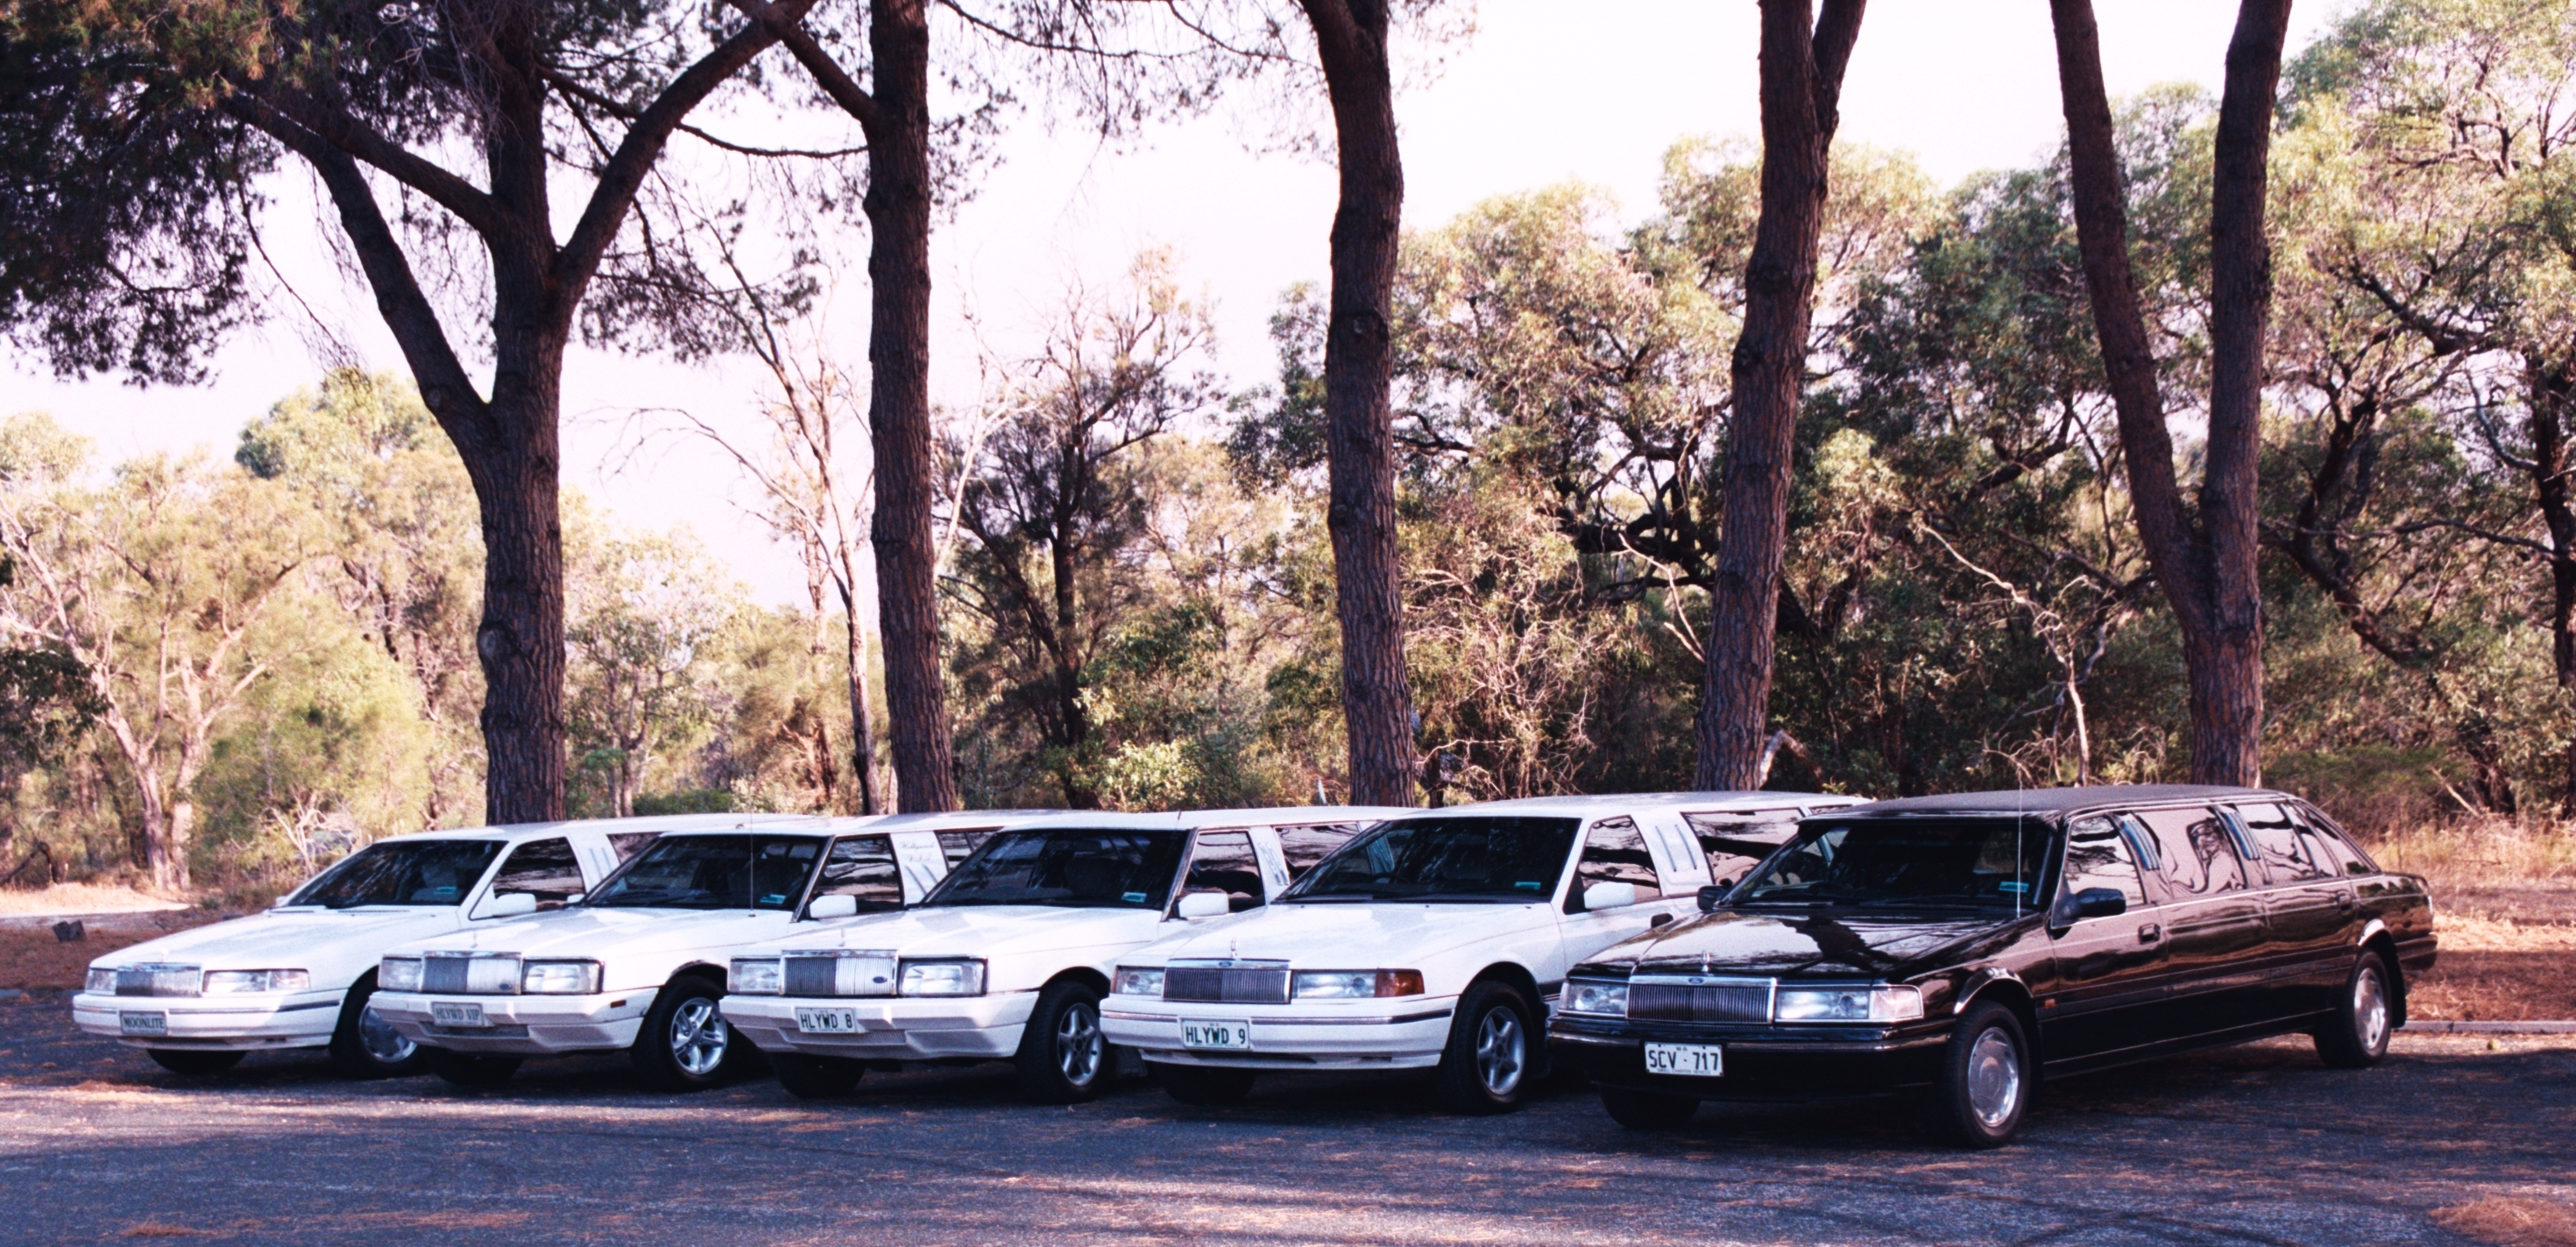 Hollywood VIP Limousines